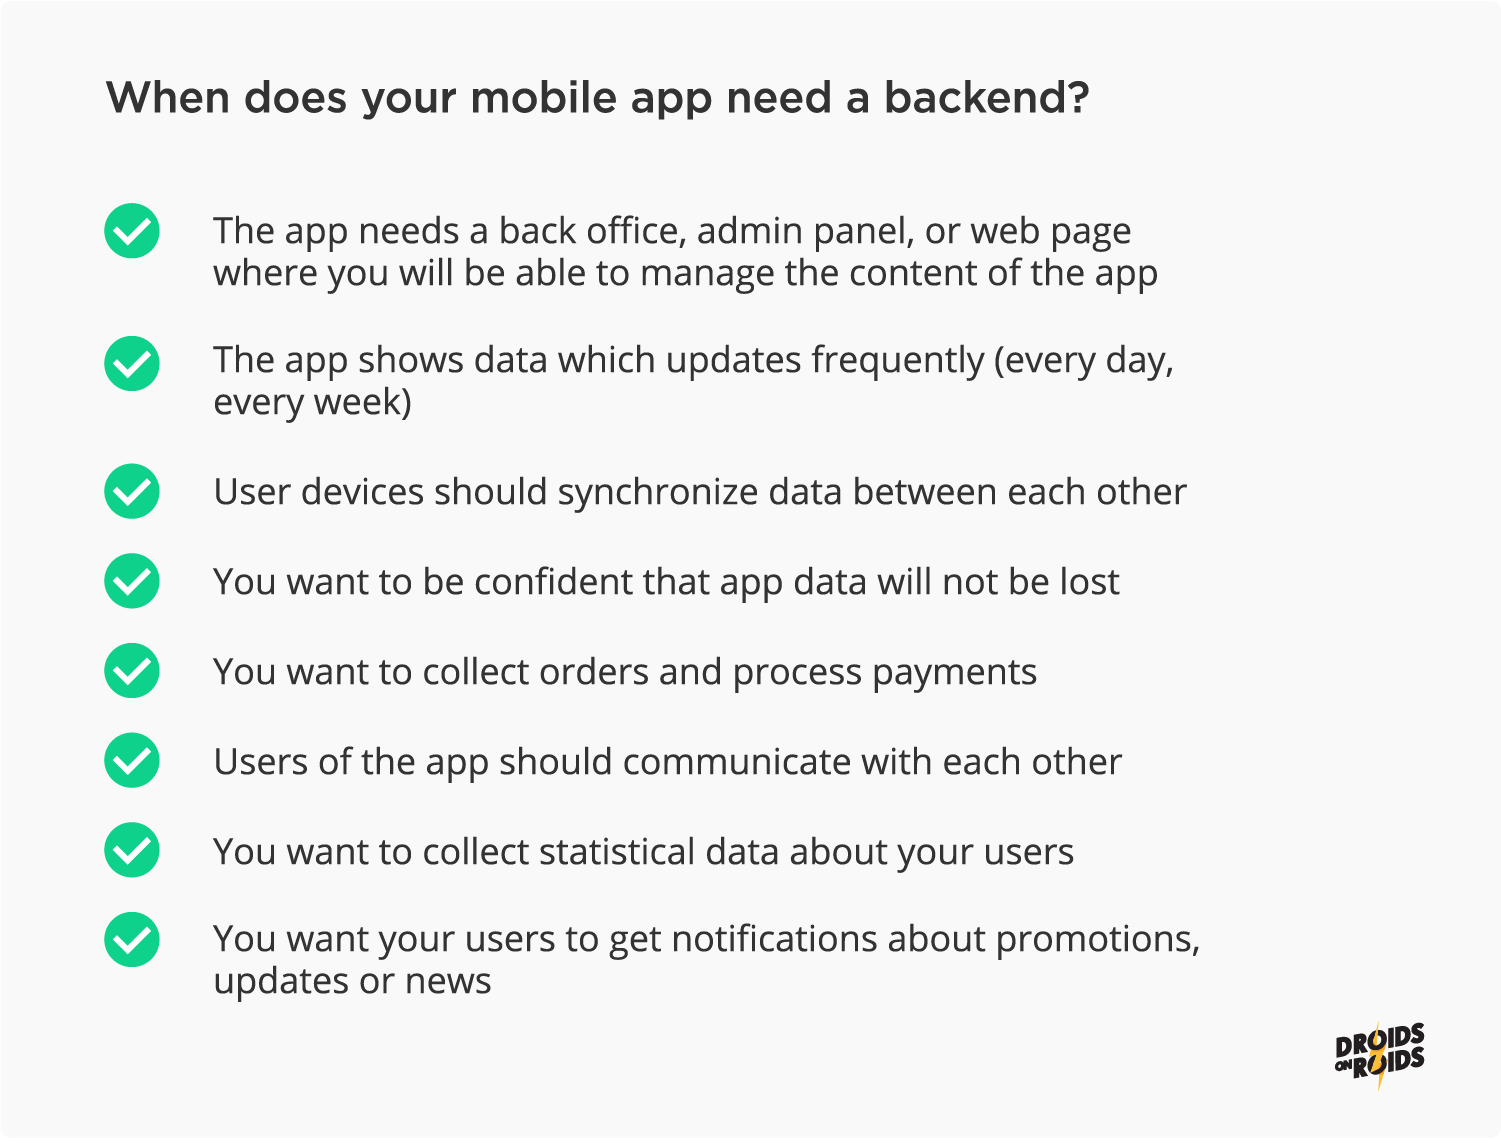 When a mobile app needs a backend?